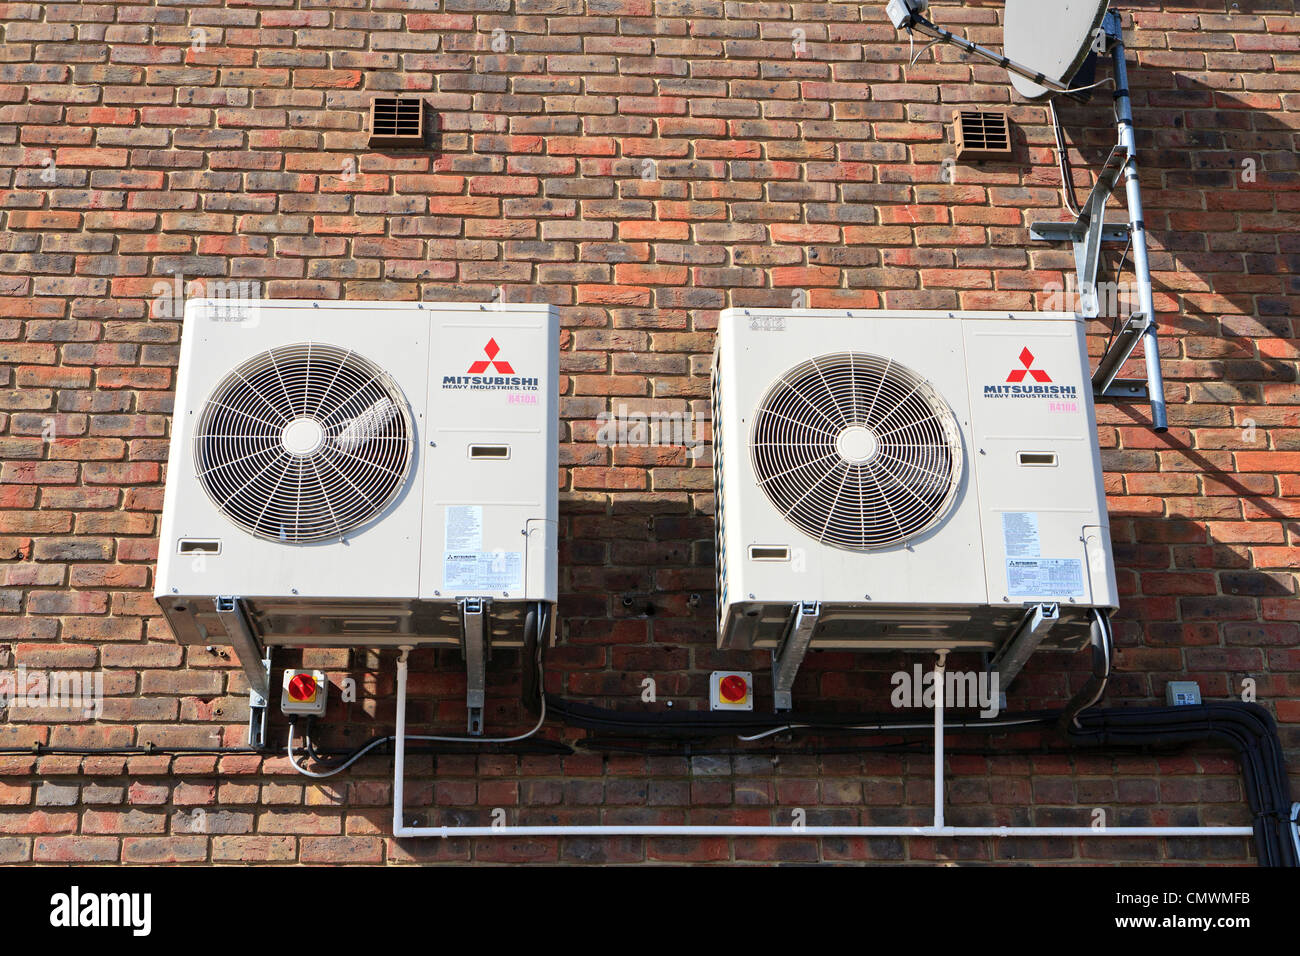 mitsubishi air conditioning units stock photo: 47278767 - alamy